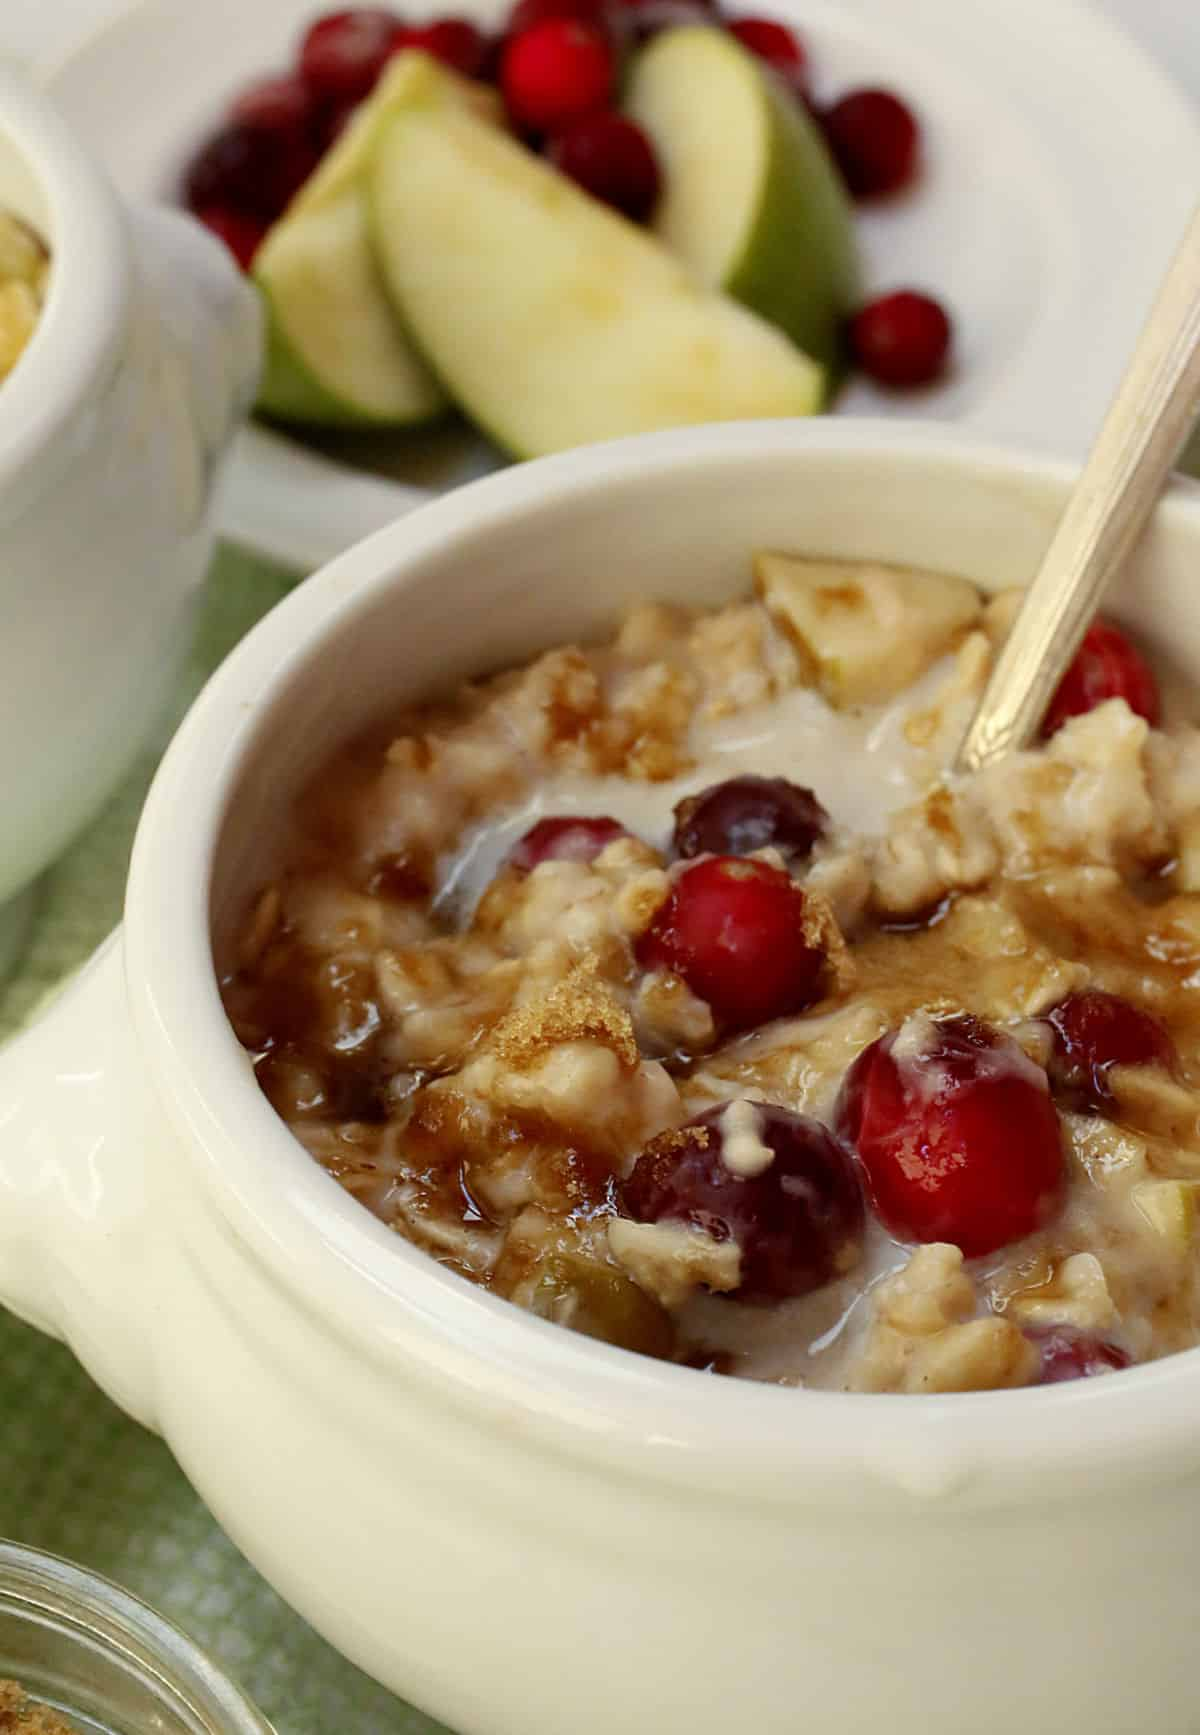 A white bowl of cranberry oatmeal.